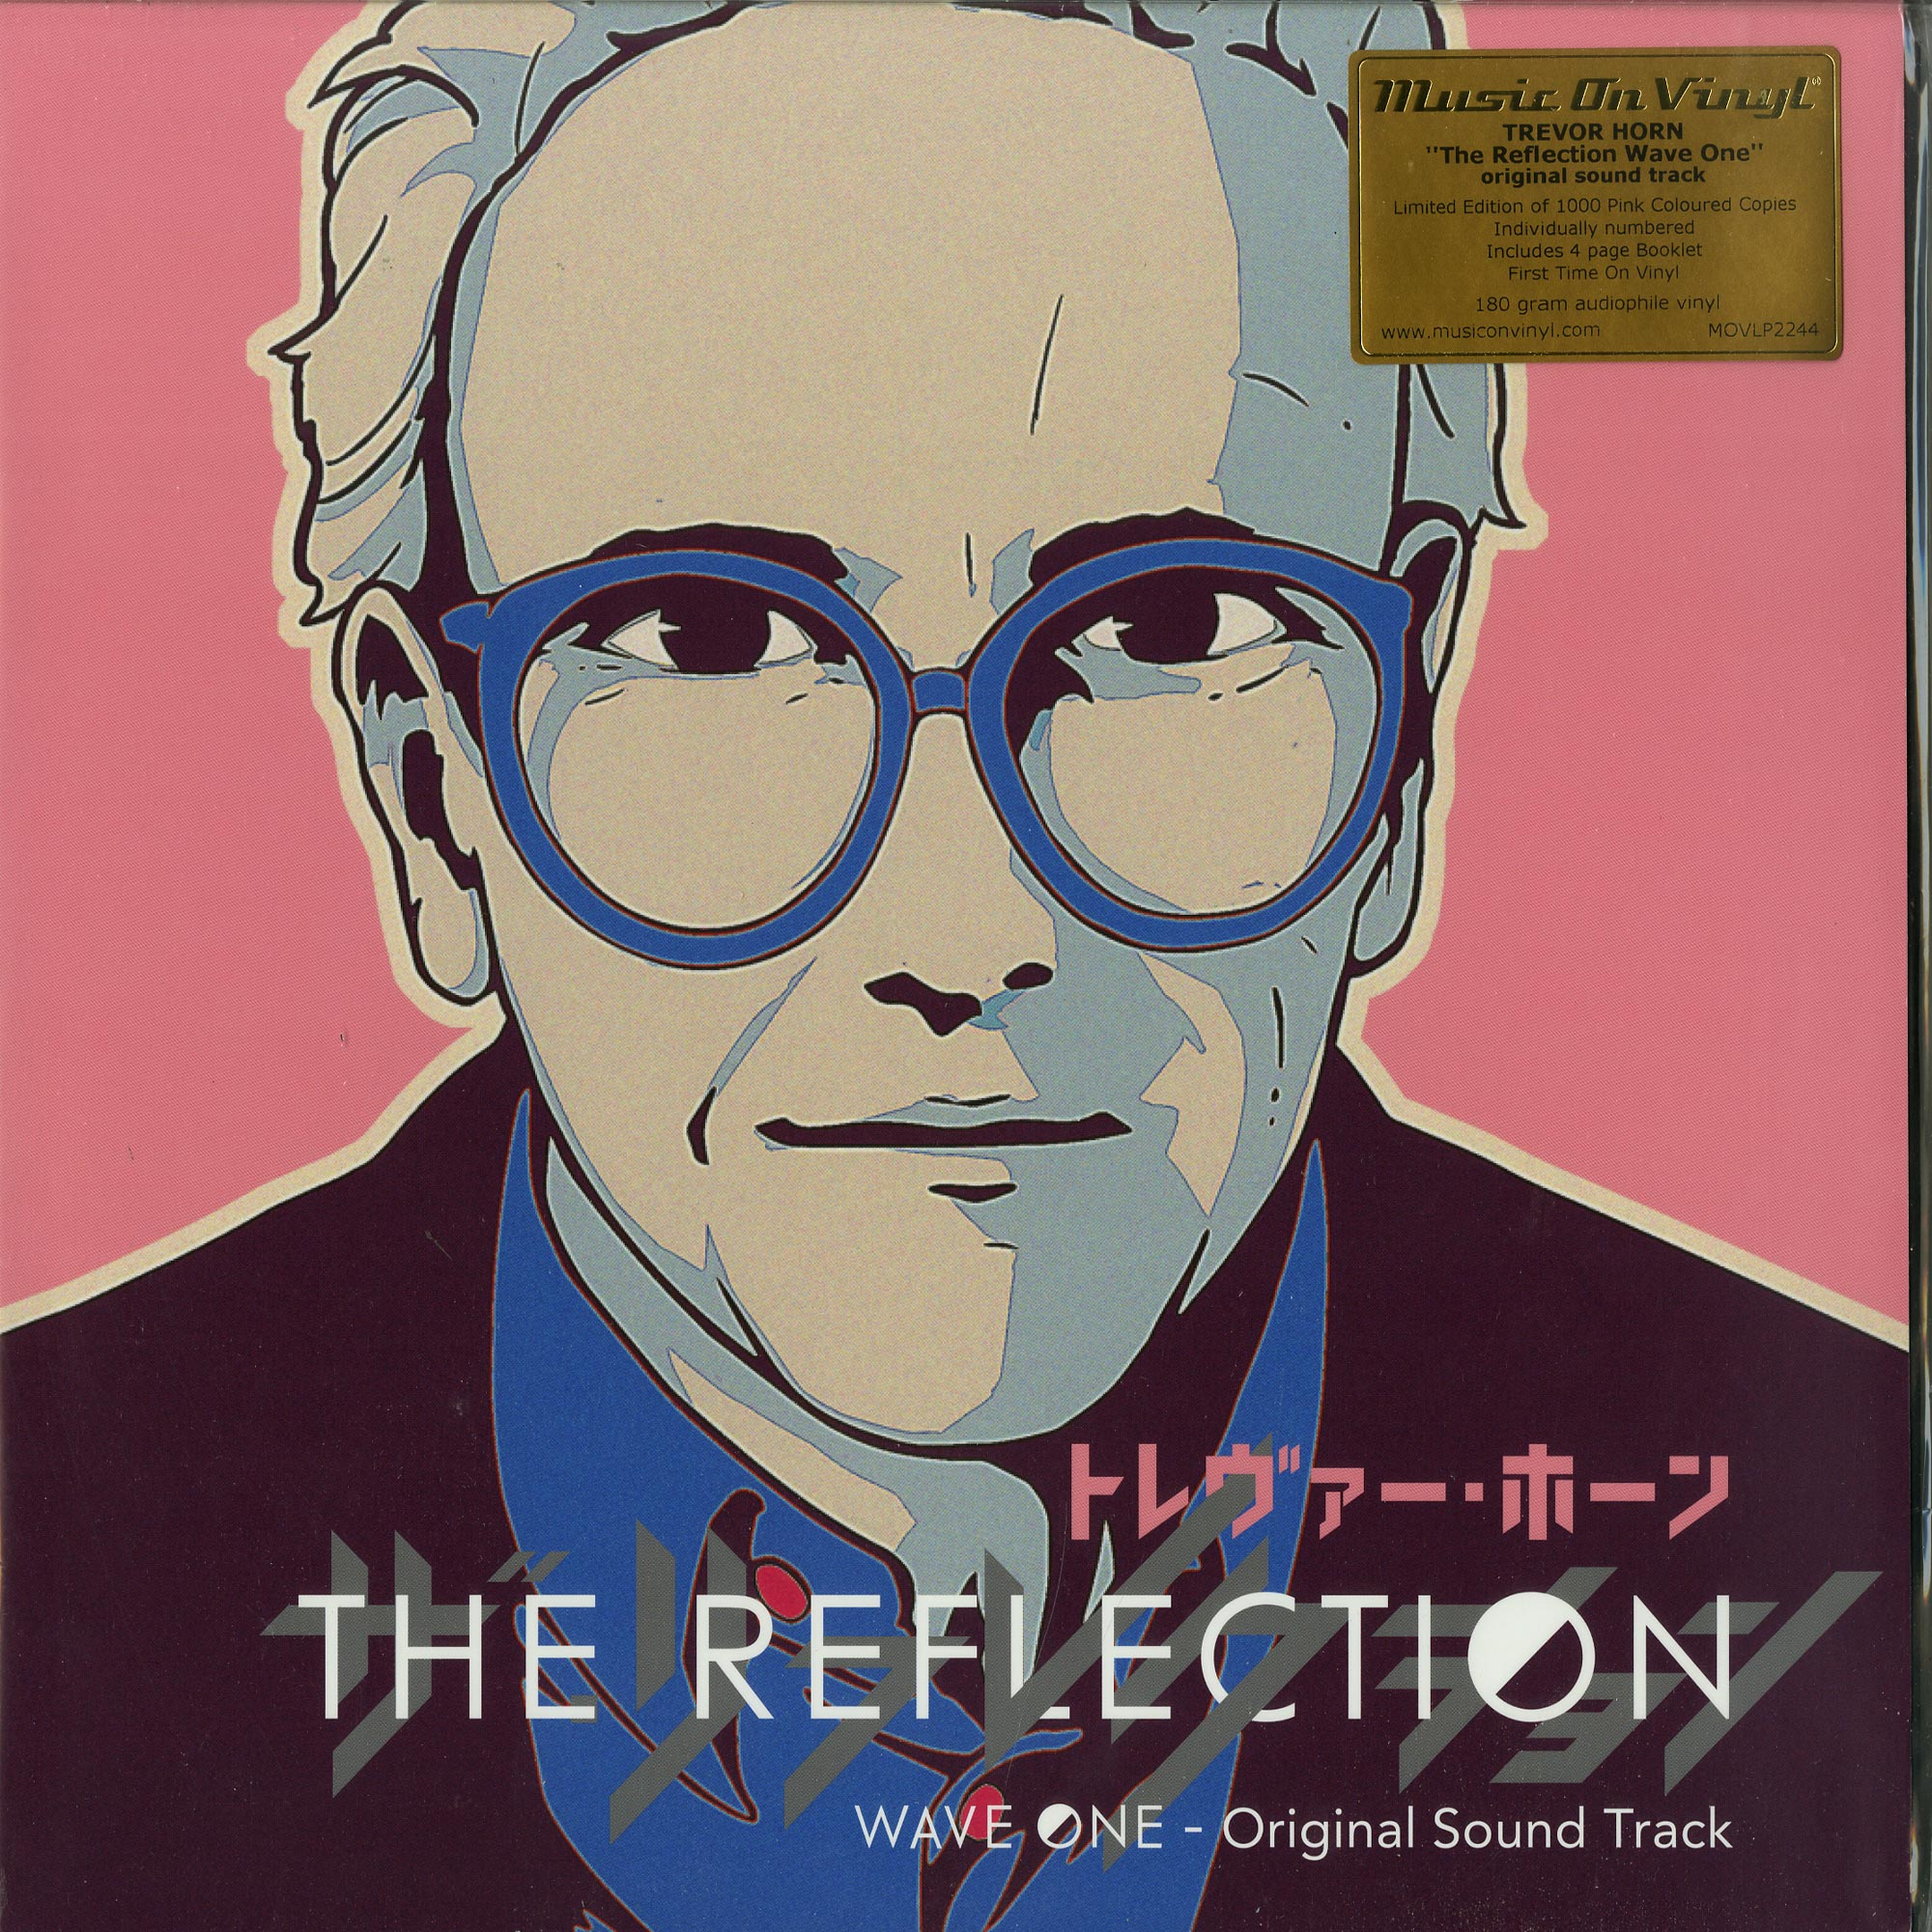 Trevor Horn - THE REFLECTION - WAVE ONE O.S.T.